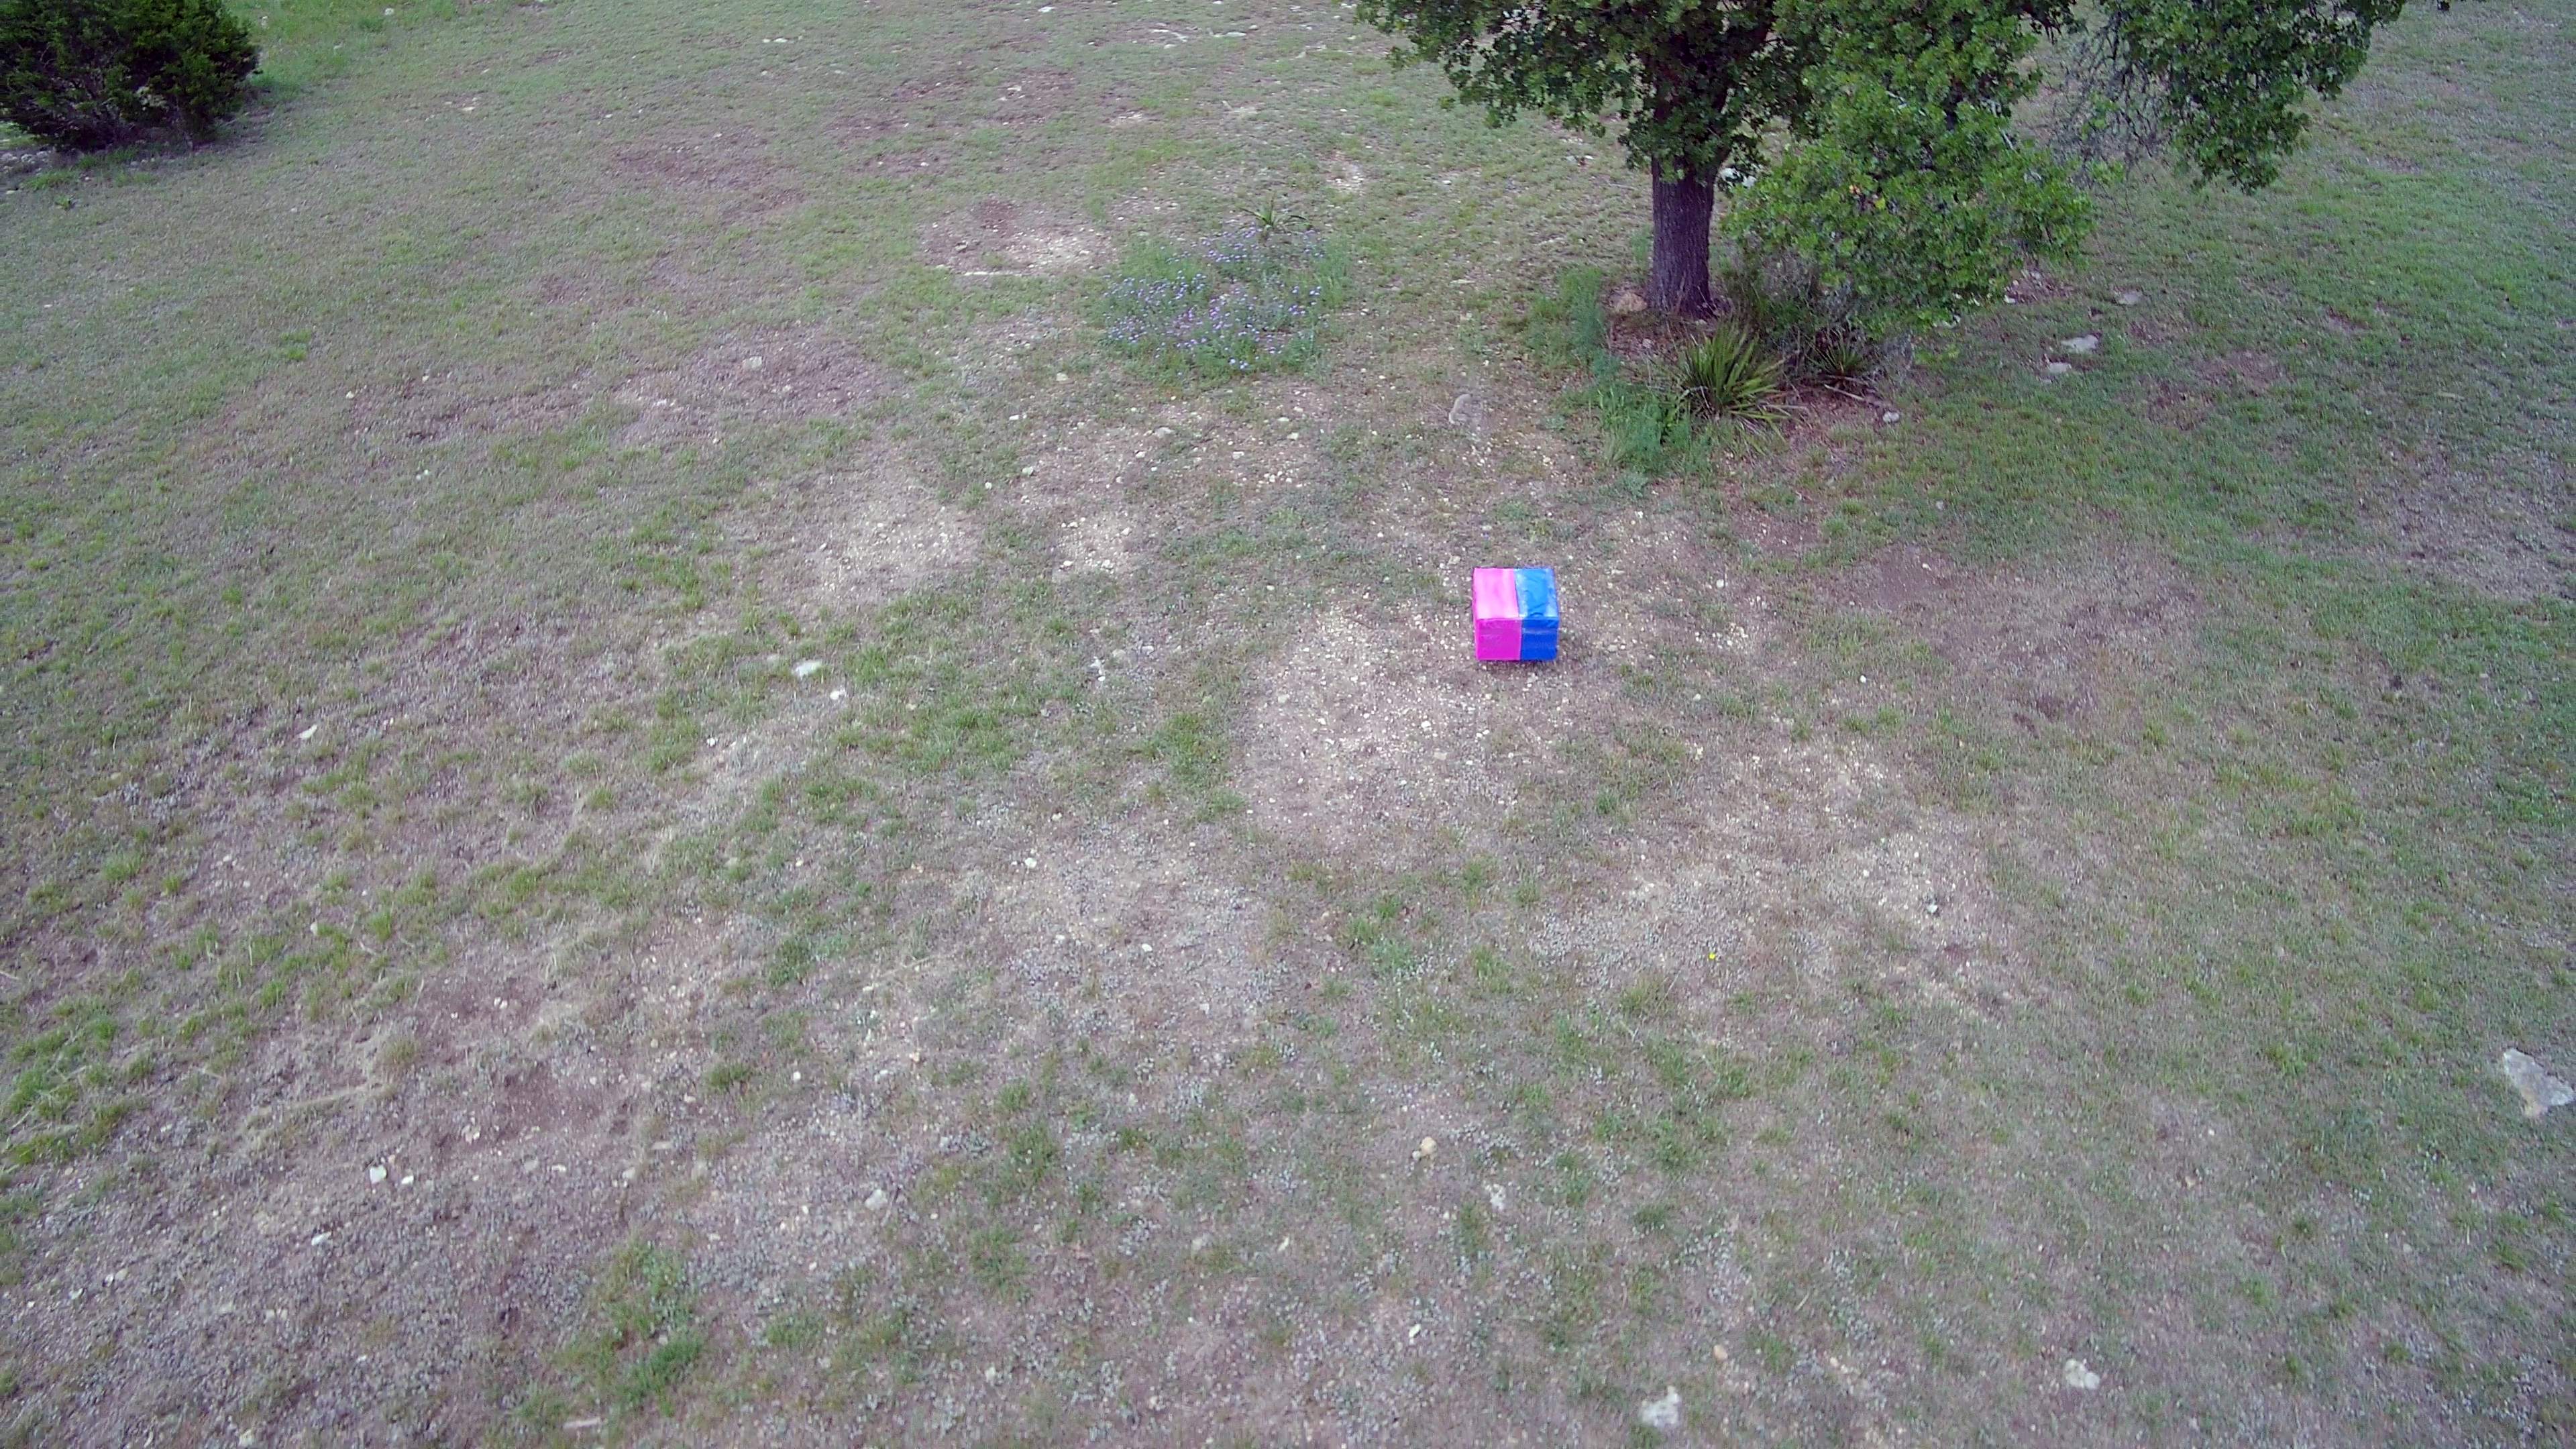 Drone video of ballistics